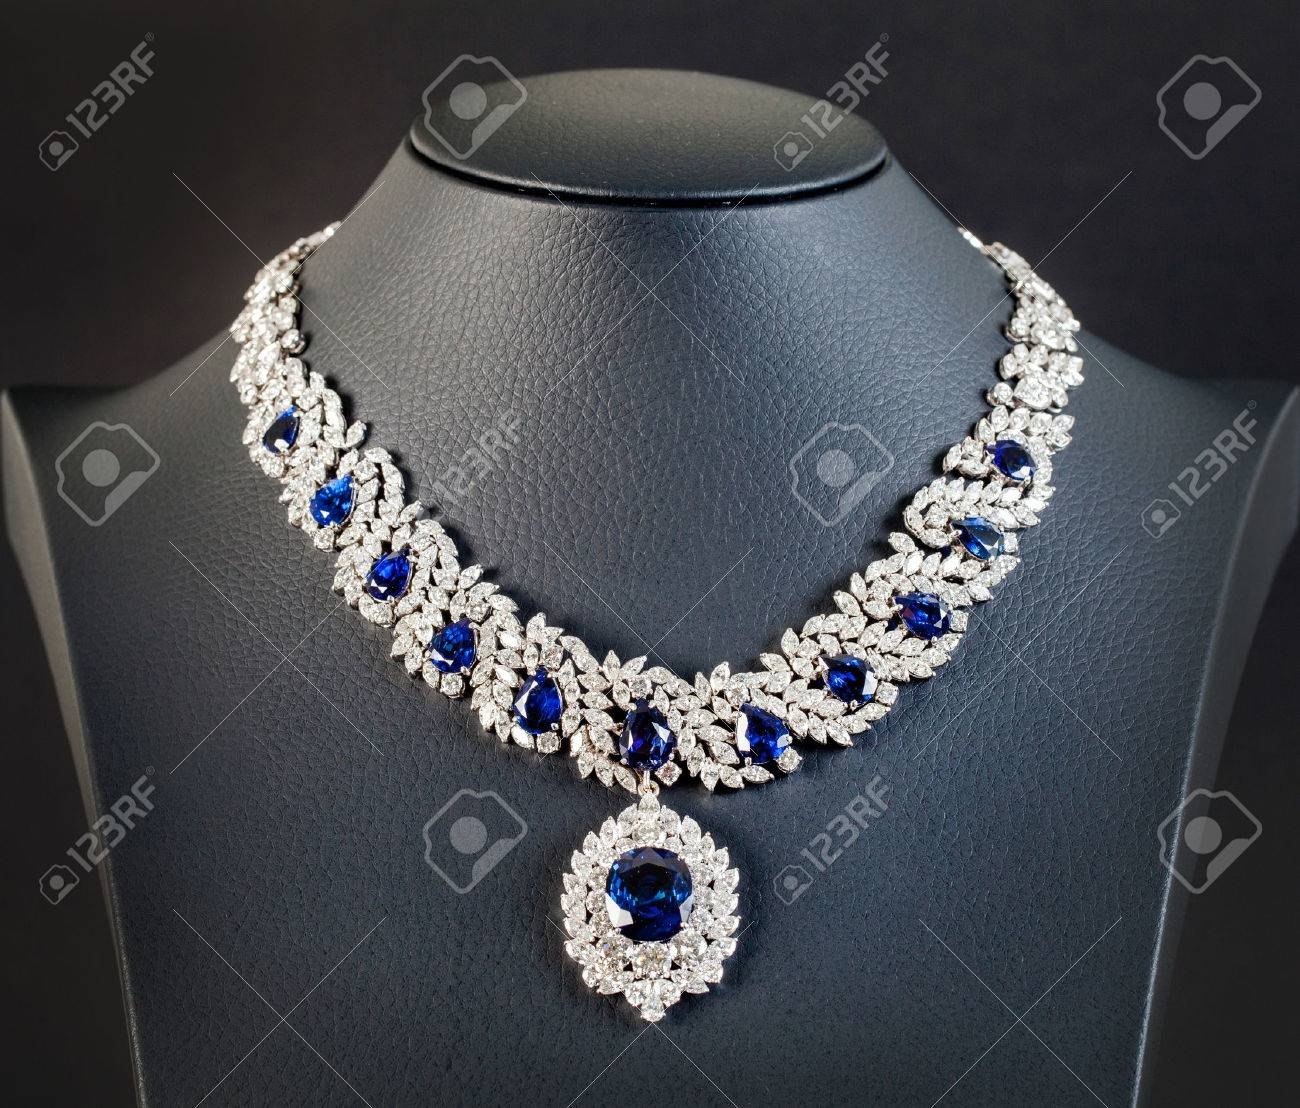 diamonds with dark blue sapphire necklace on the black background Stock Photo - 31349056